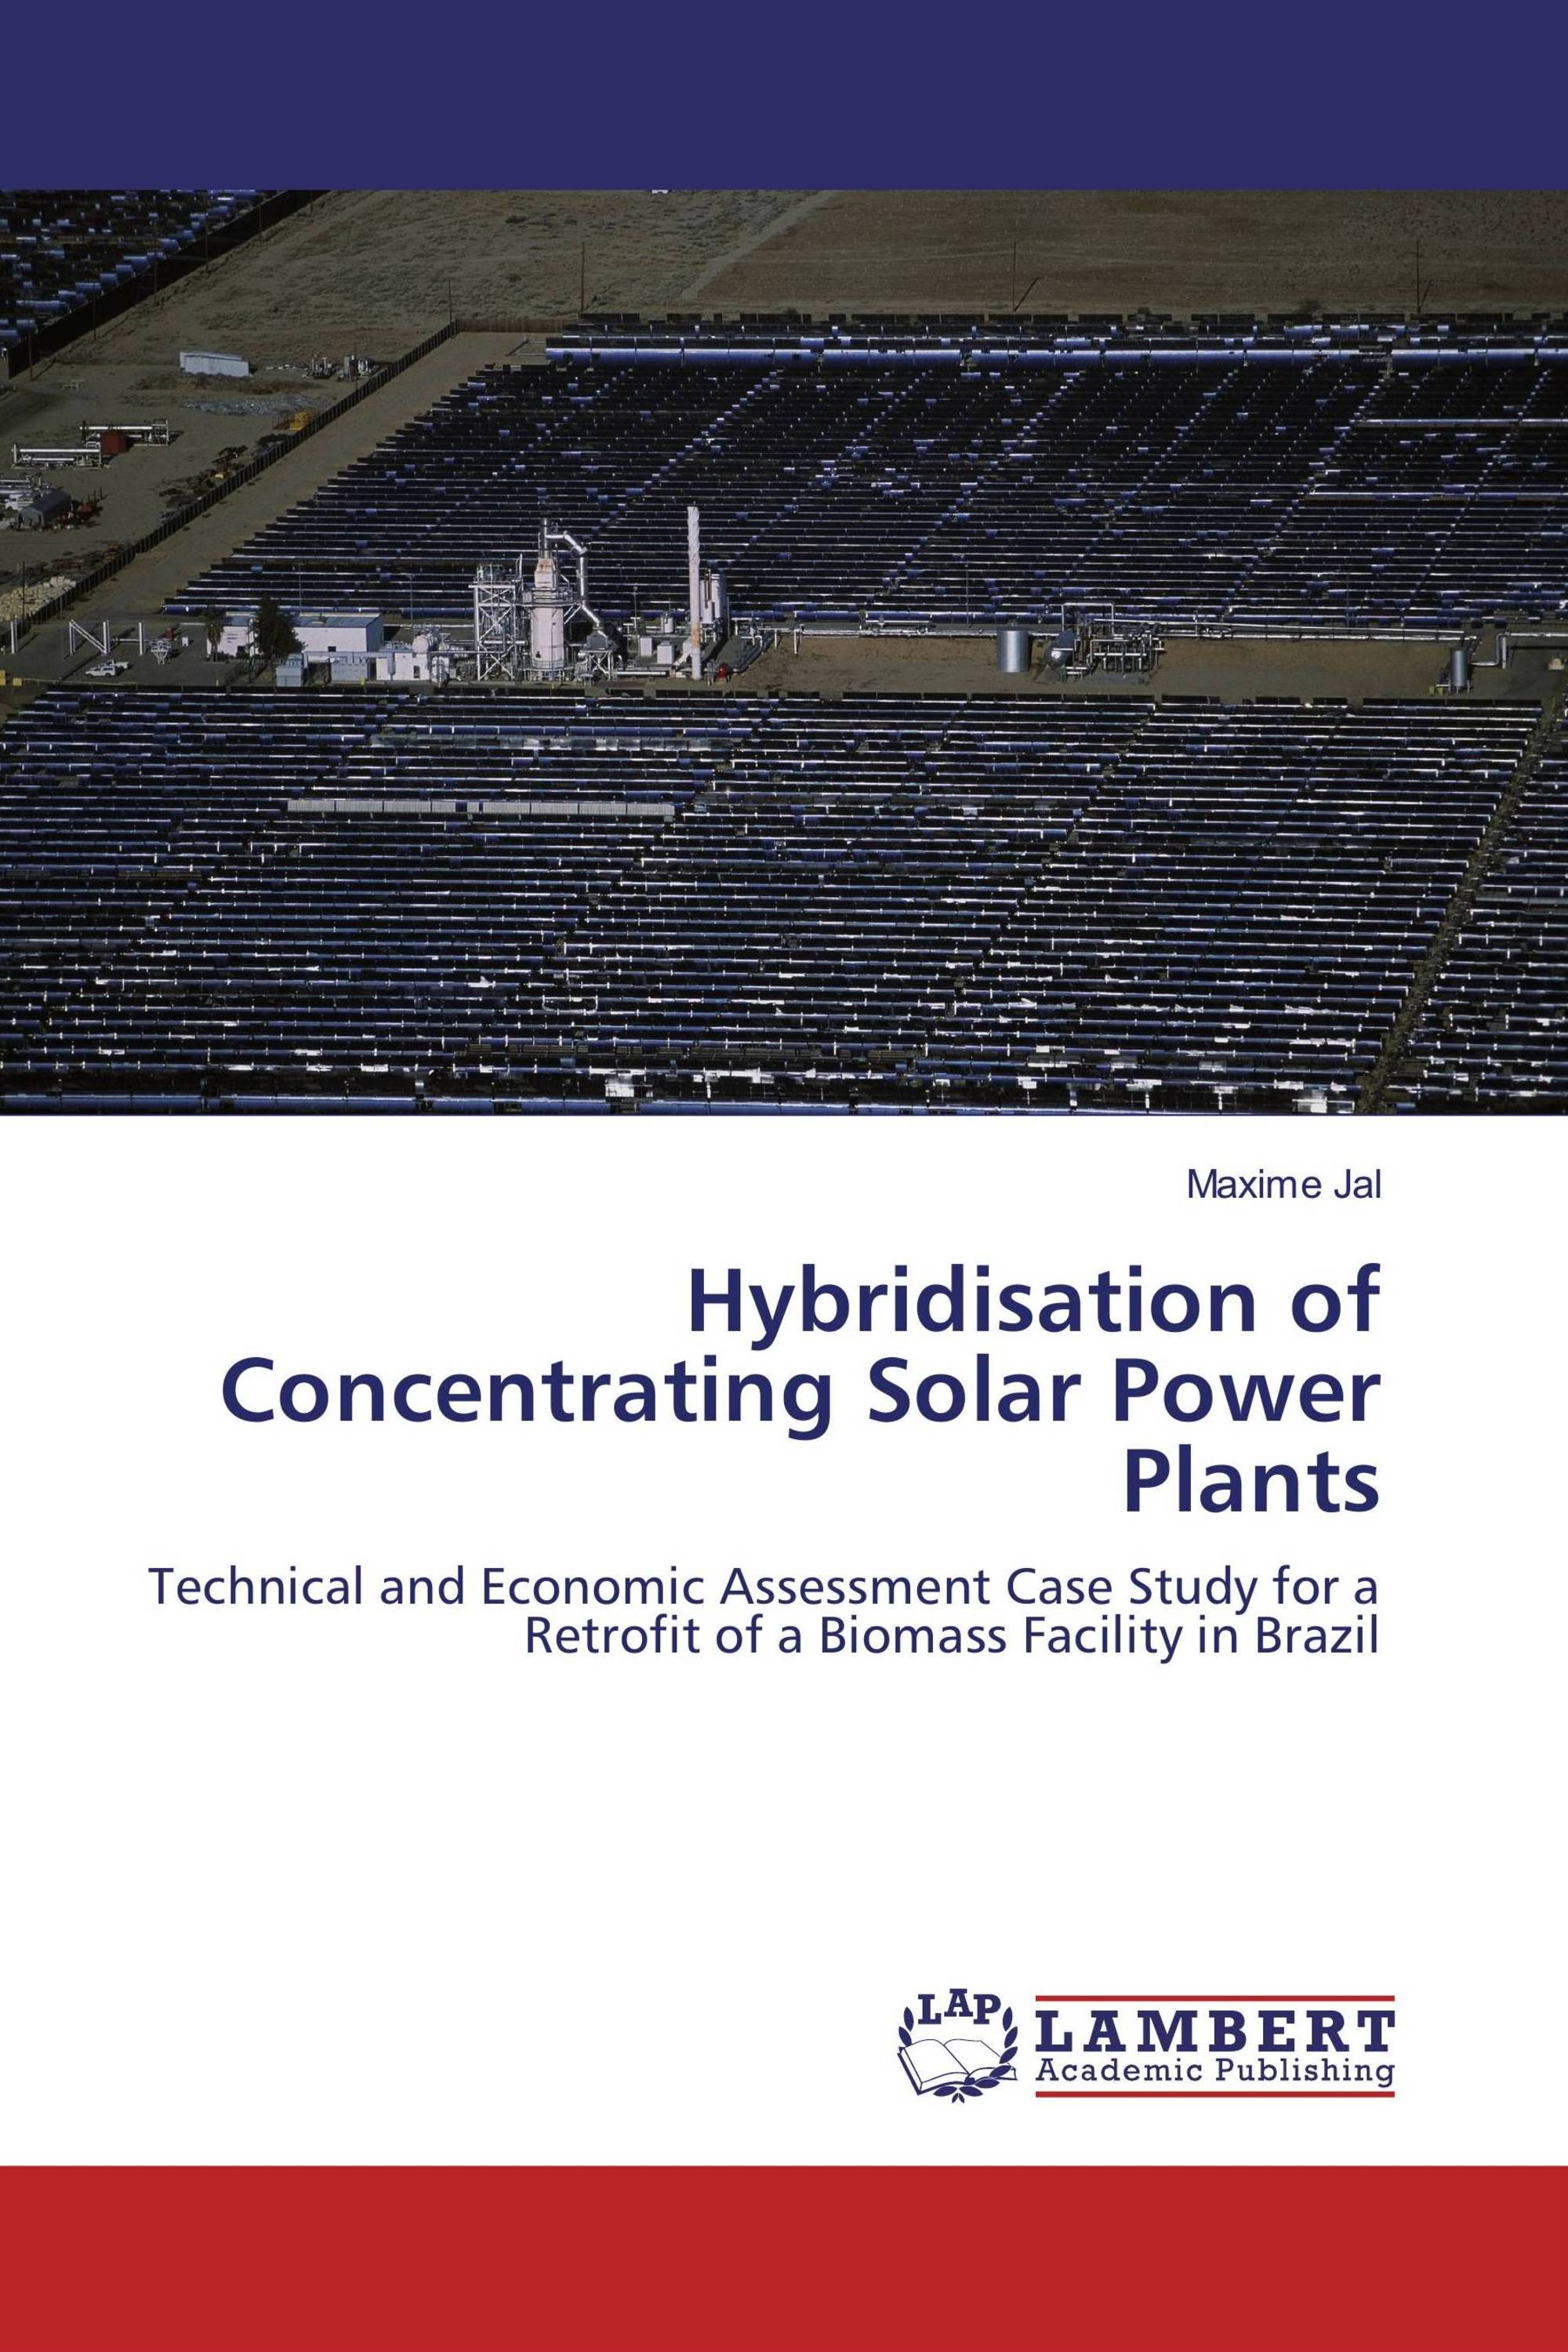 concentrated photovoltaic thesis The effects of nanoparticle augmentation of nitrate thermal storage materials for use in concentrating solar power applications a thesis by matthew robert betts.